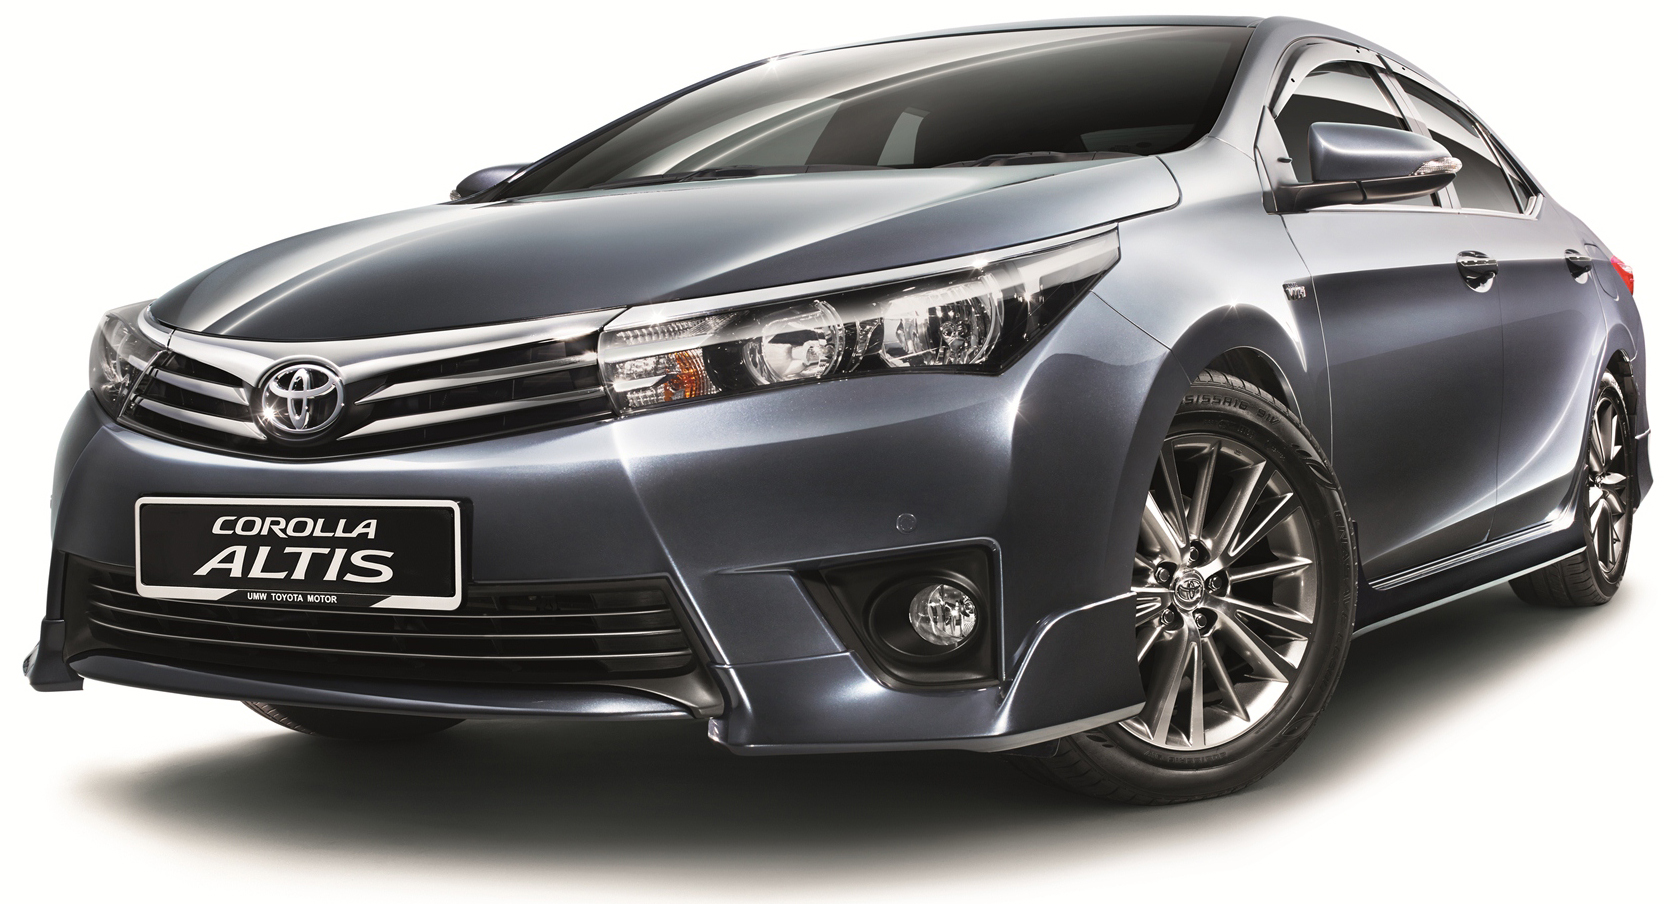 Toyota Corolla Altis 1 8g Replaces 2 0g In Lineup Image